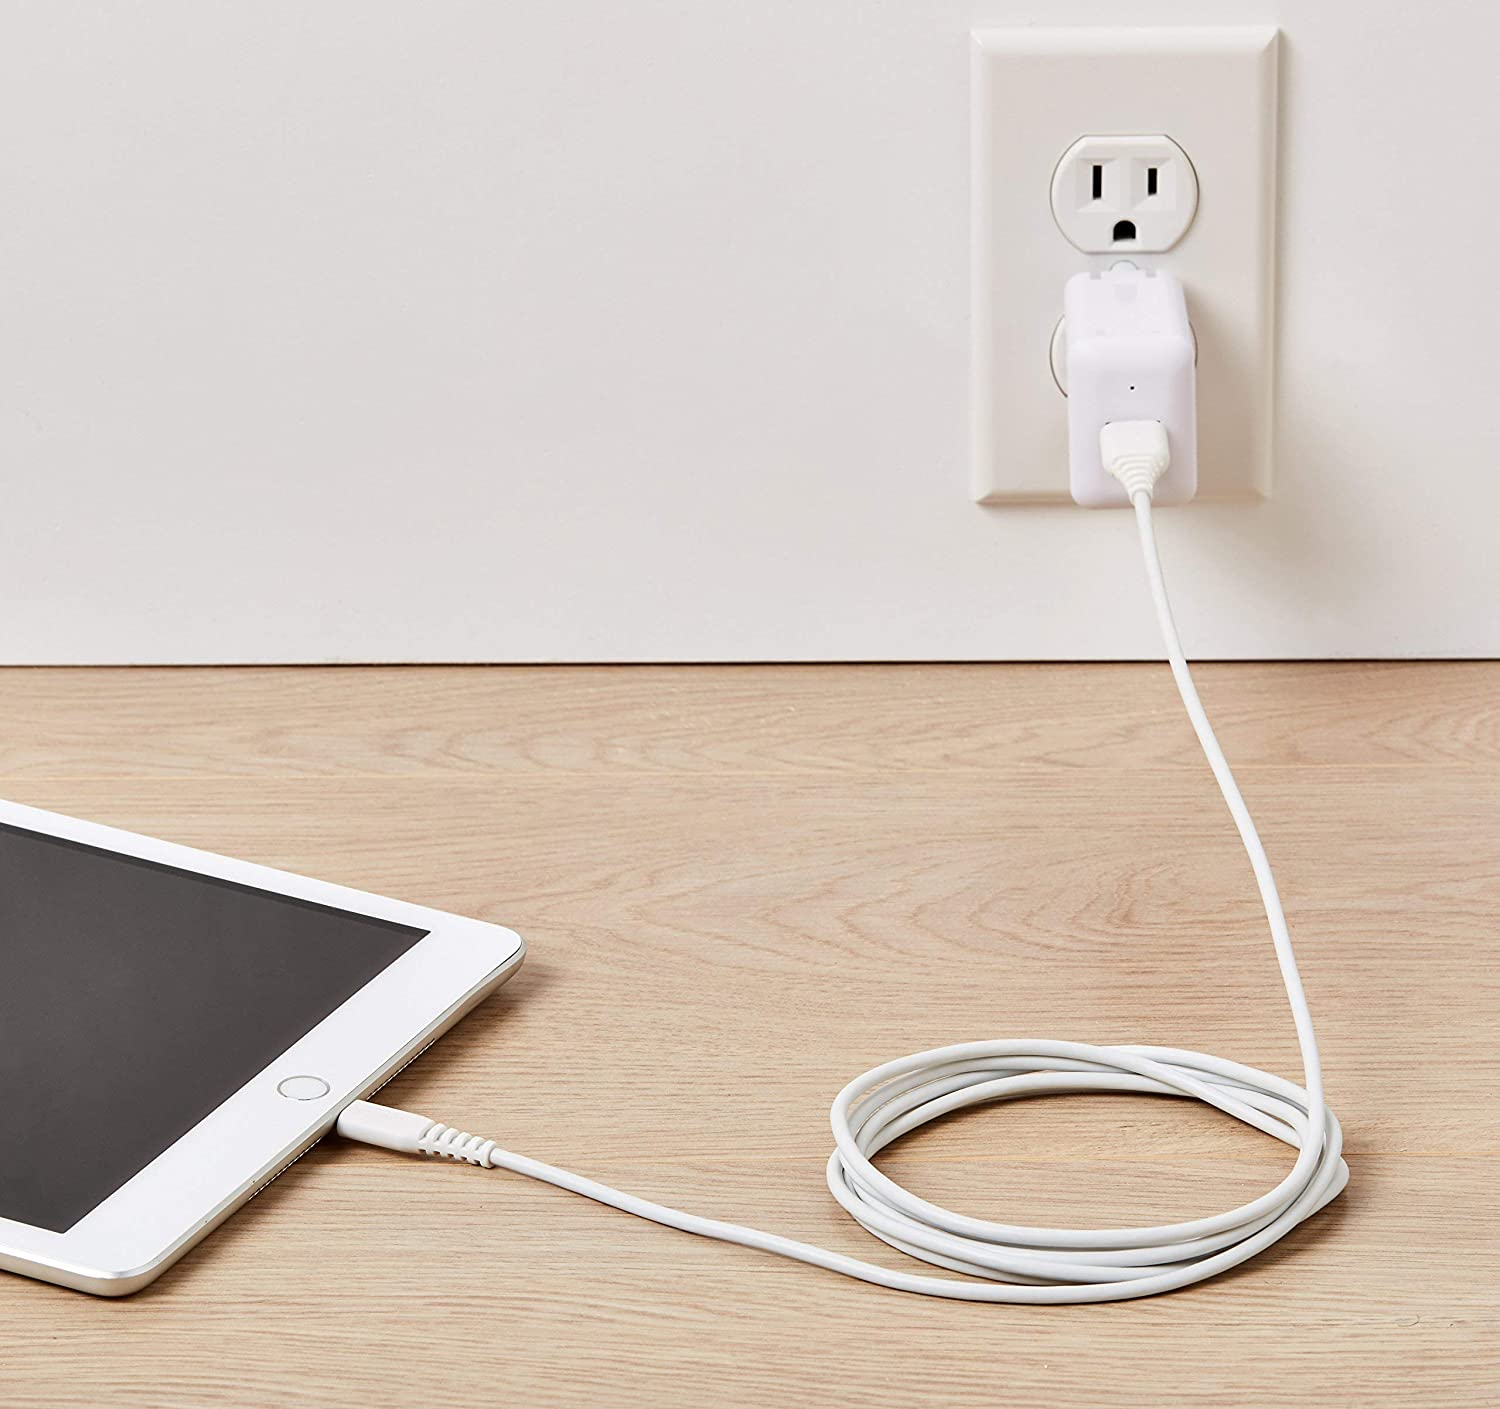 Basics MFi-Certified Lightning to USB A Cable for Apple iPhone and iPad - 6 Feet (1.8 Meters) - White